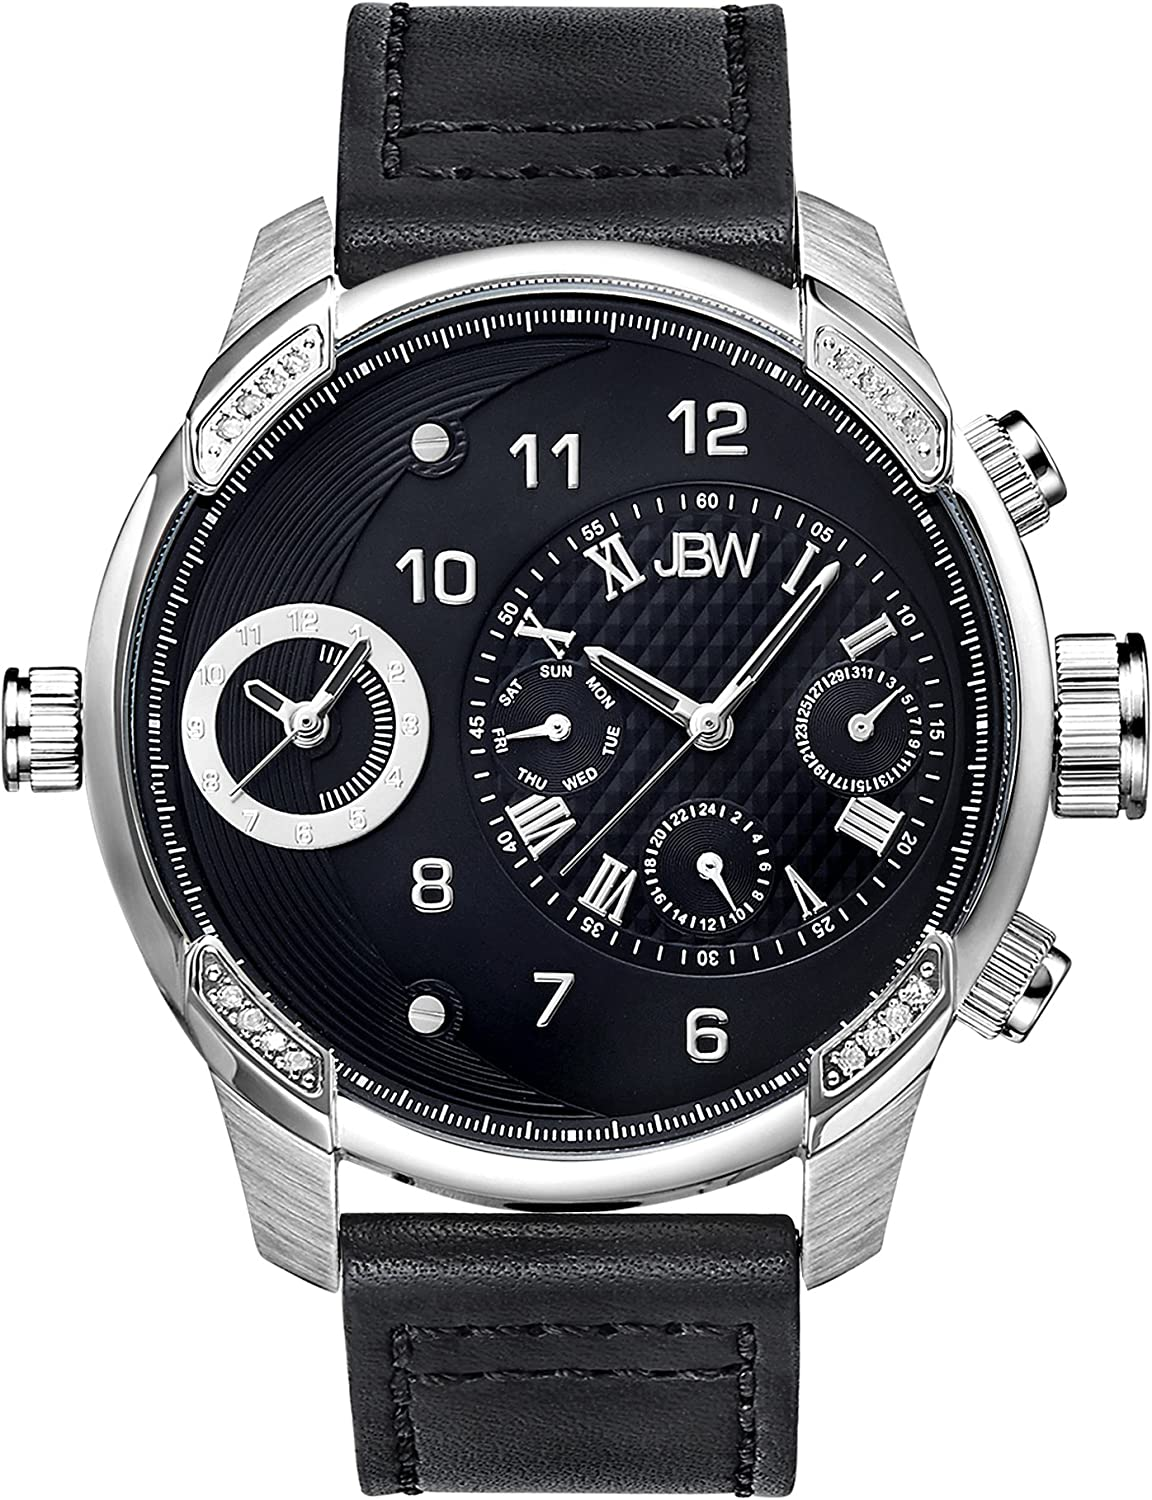 JBW Men s G3 Dual Time Zone Real Diamond Watch with Genuine Leather Band